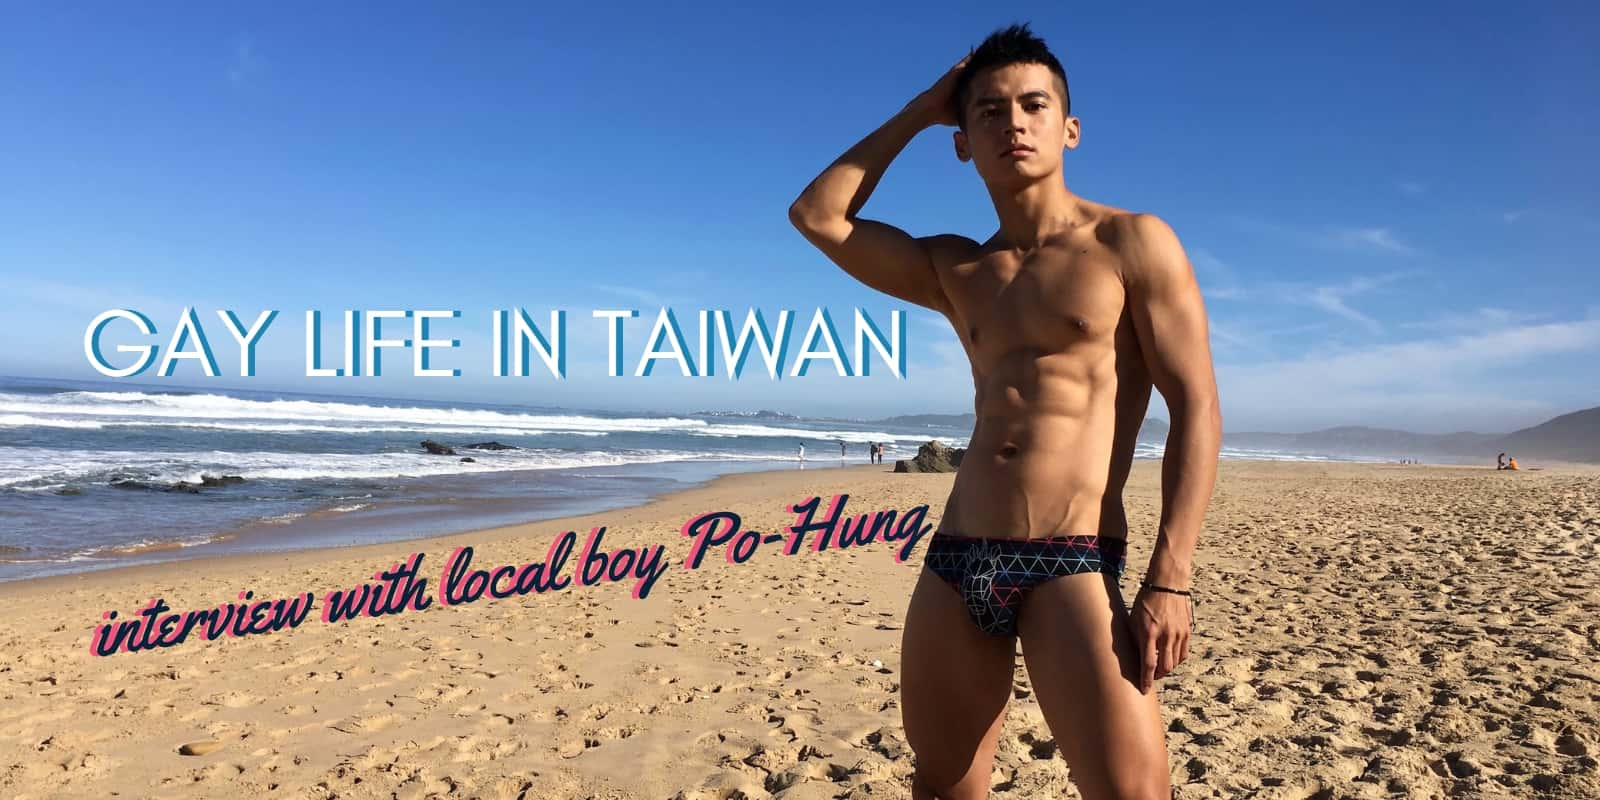 Gay Taiwan interview with Po-Hung